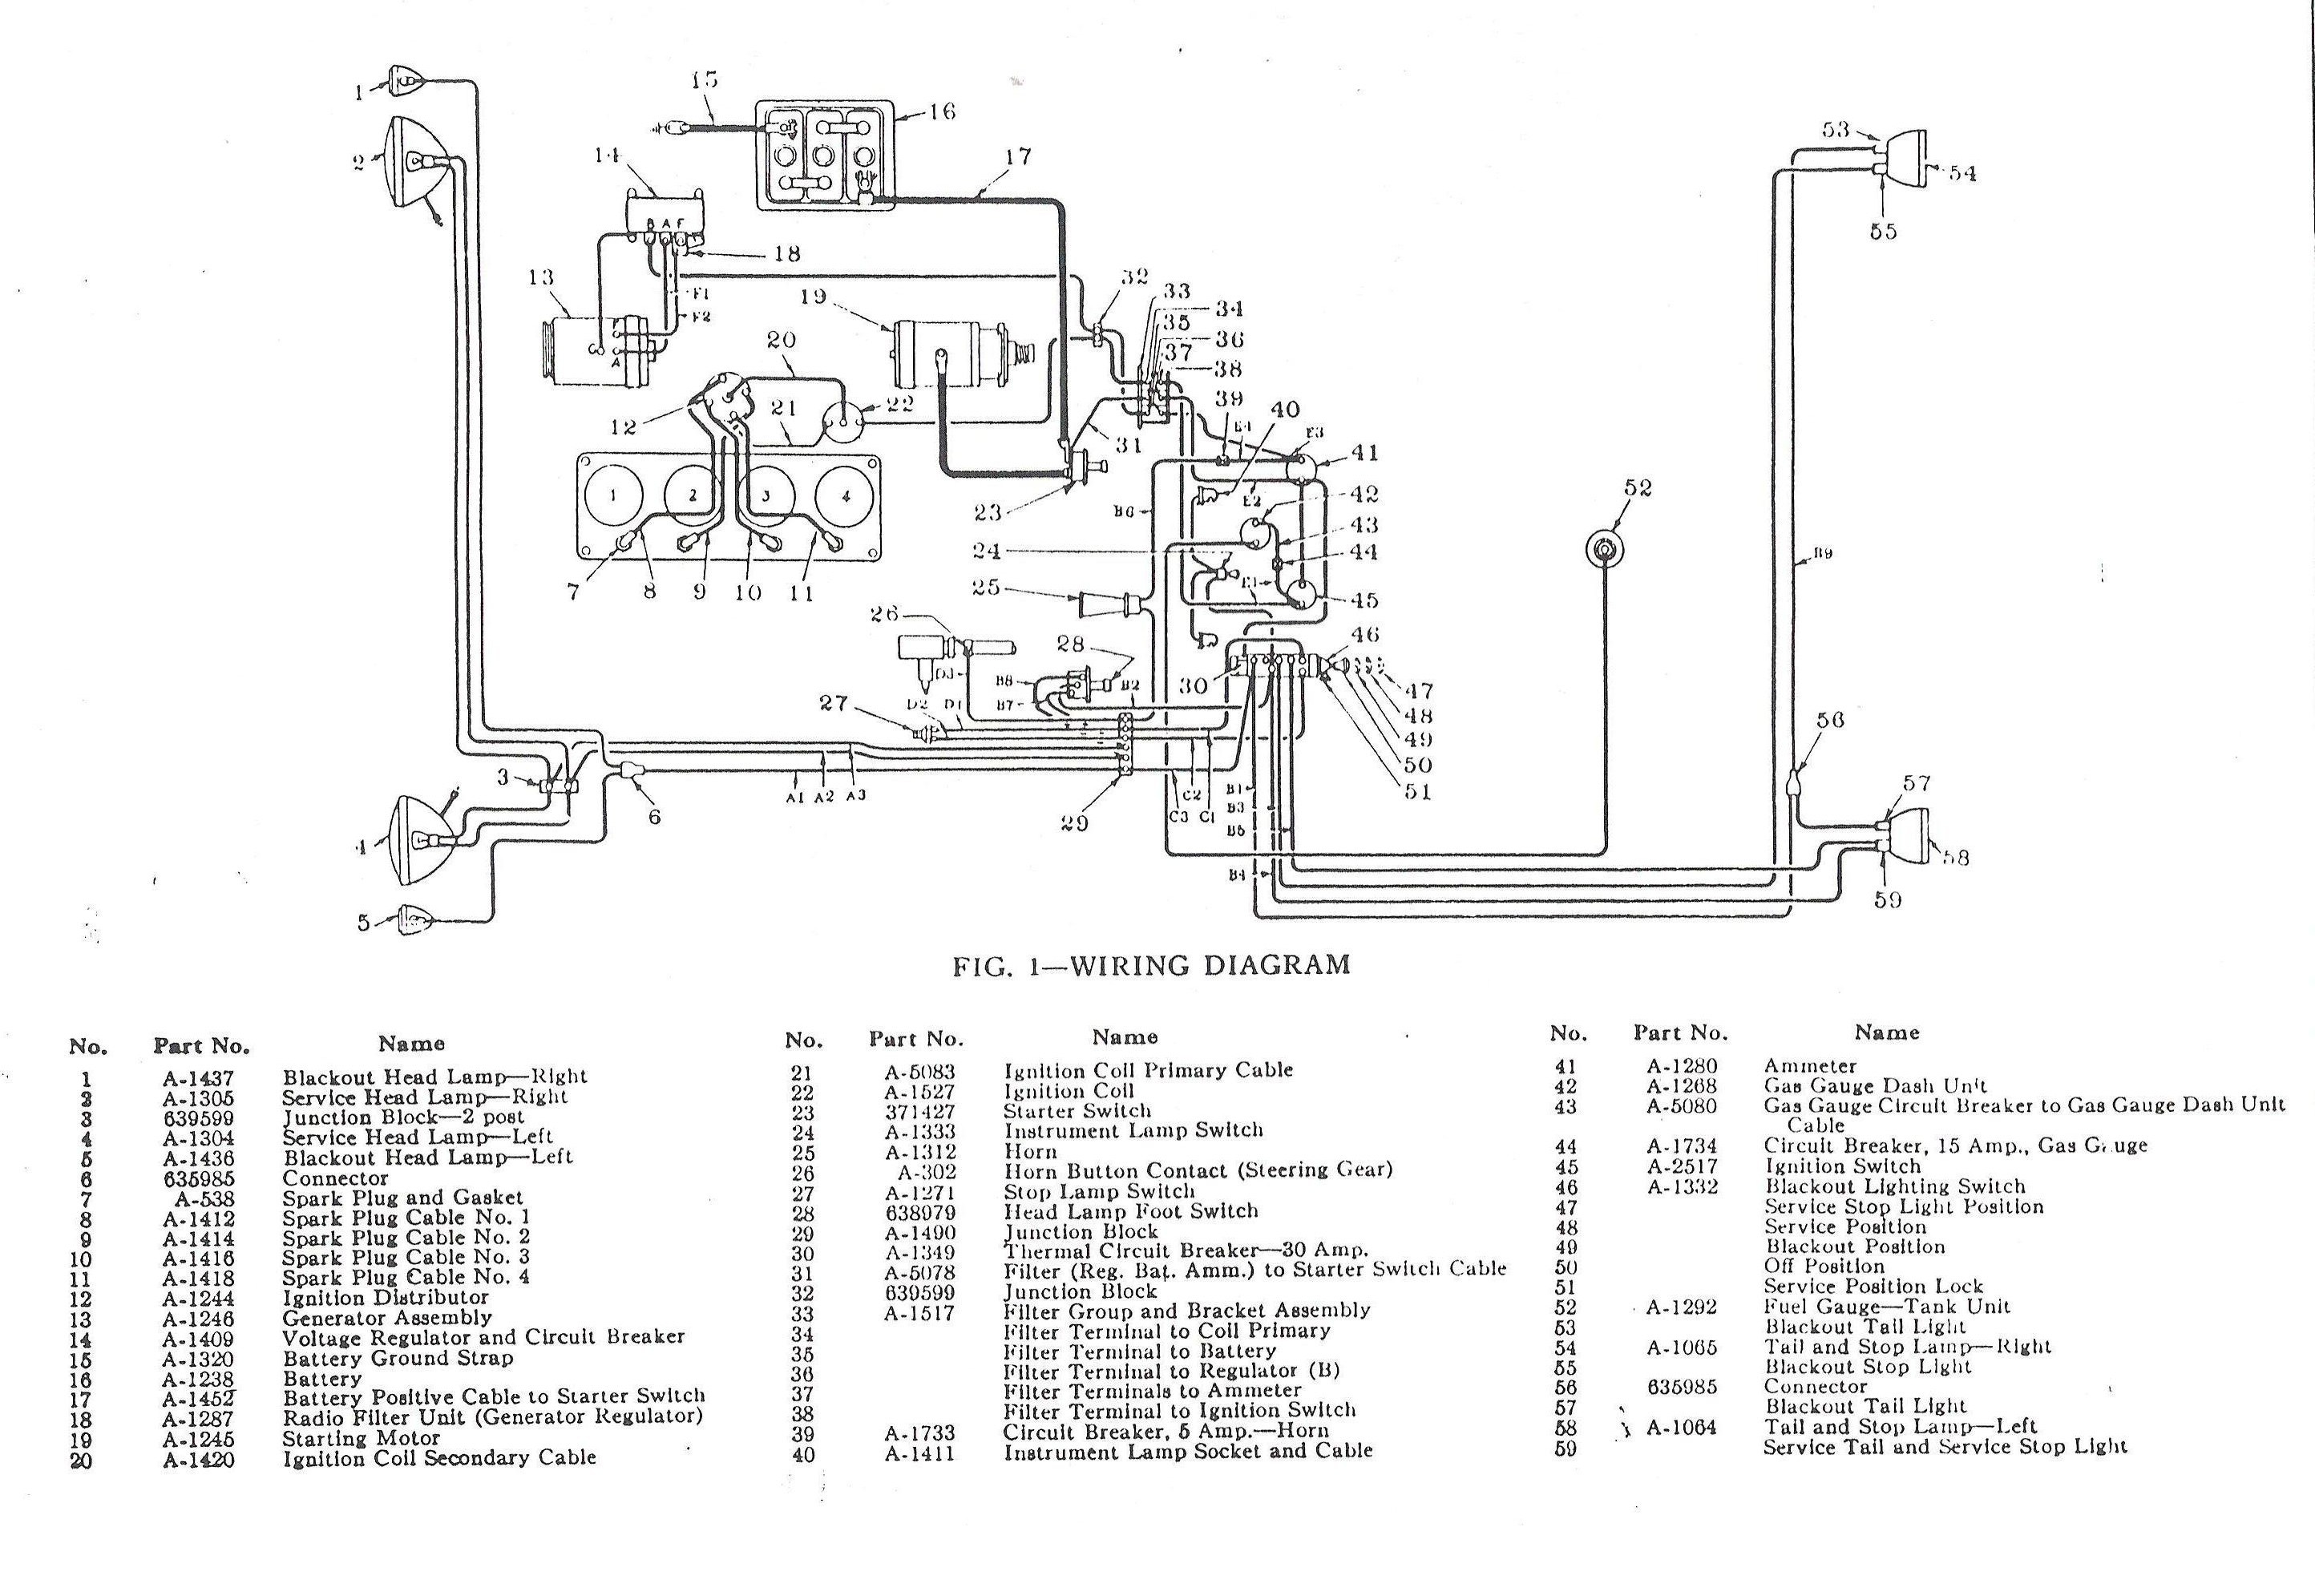 1965 Jeep Cj5 Wiring Diagram - Wiring Diagram